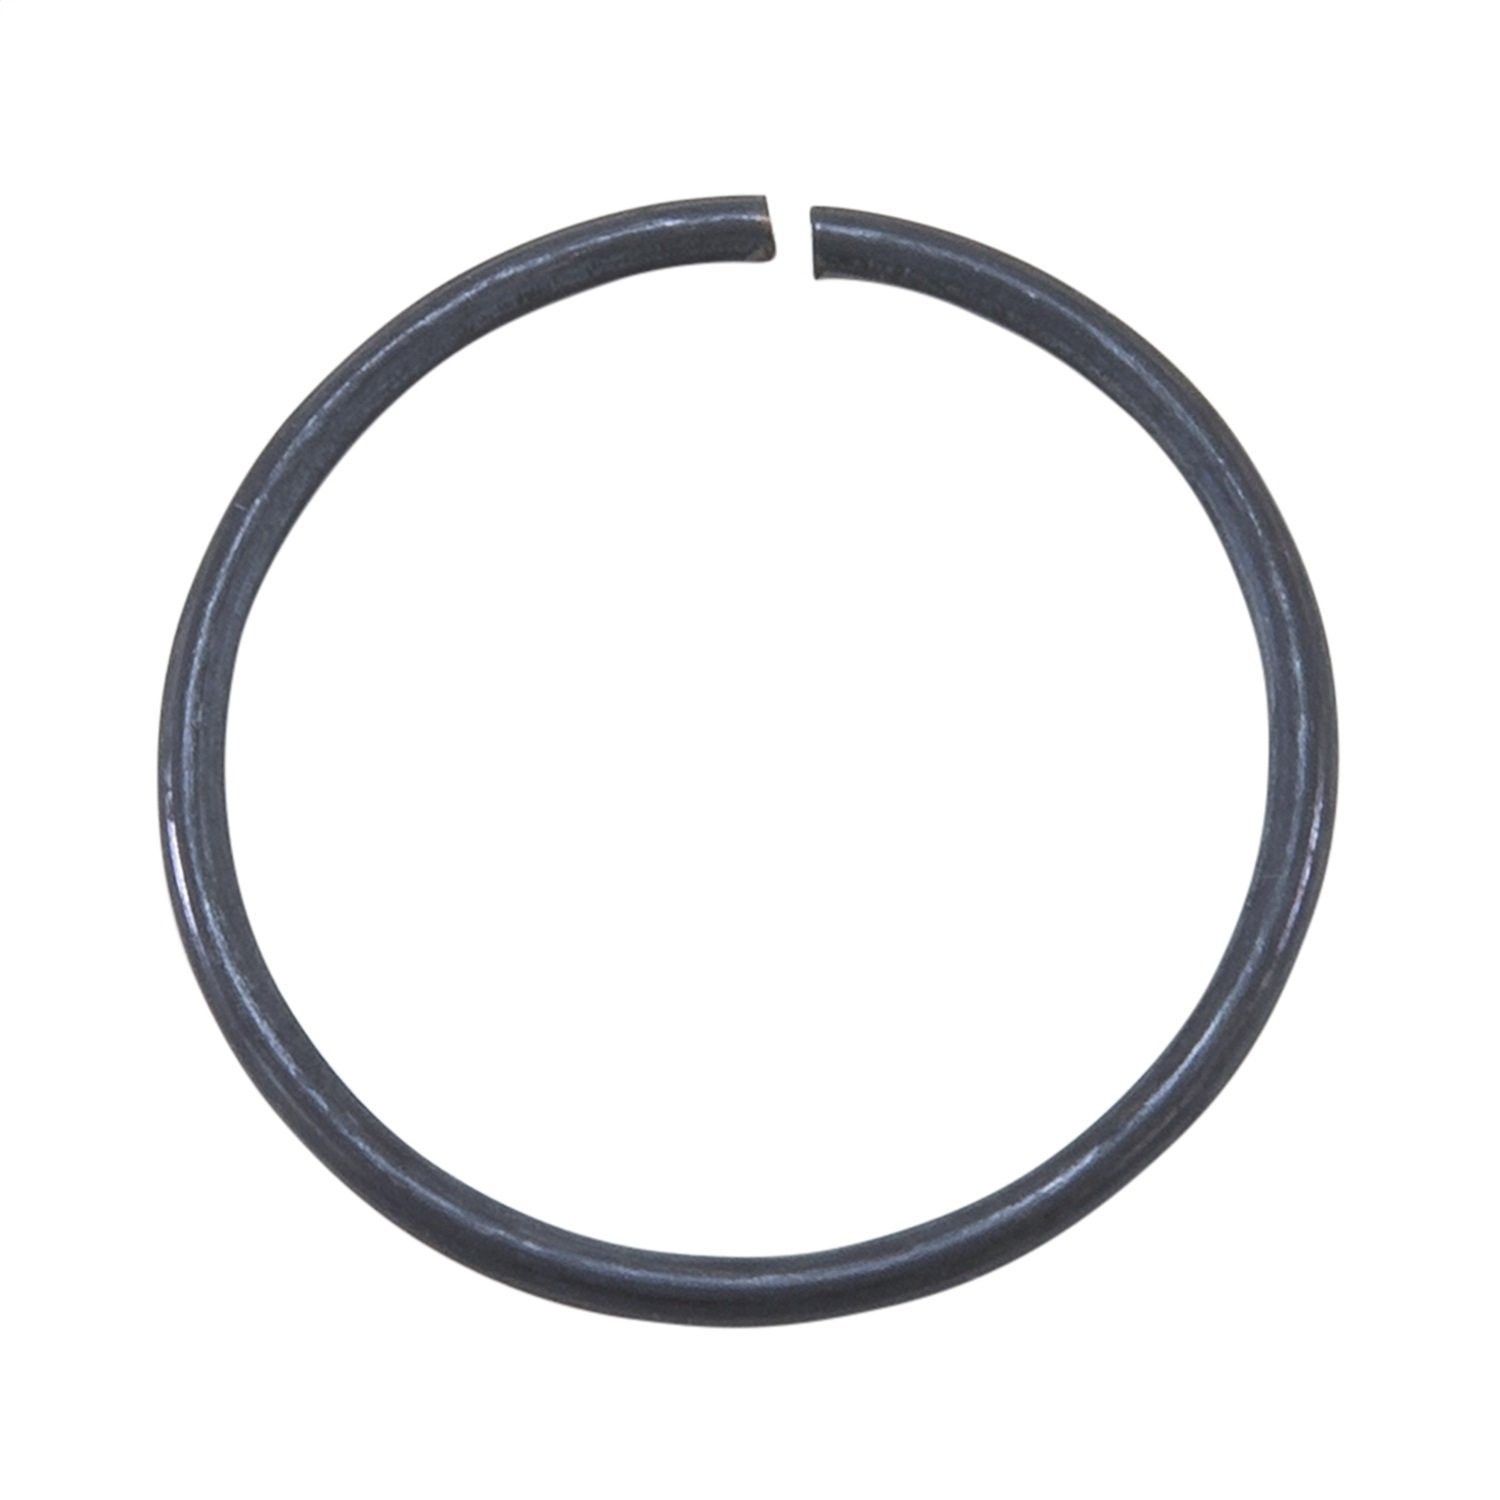 Yukon (YSPSR-014) Outer Wheel Bearing Retaining Snap Ring for GM 14-Bolt Truck Differential